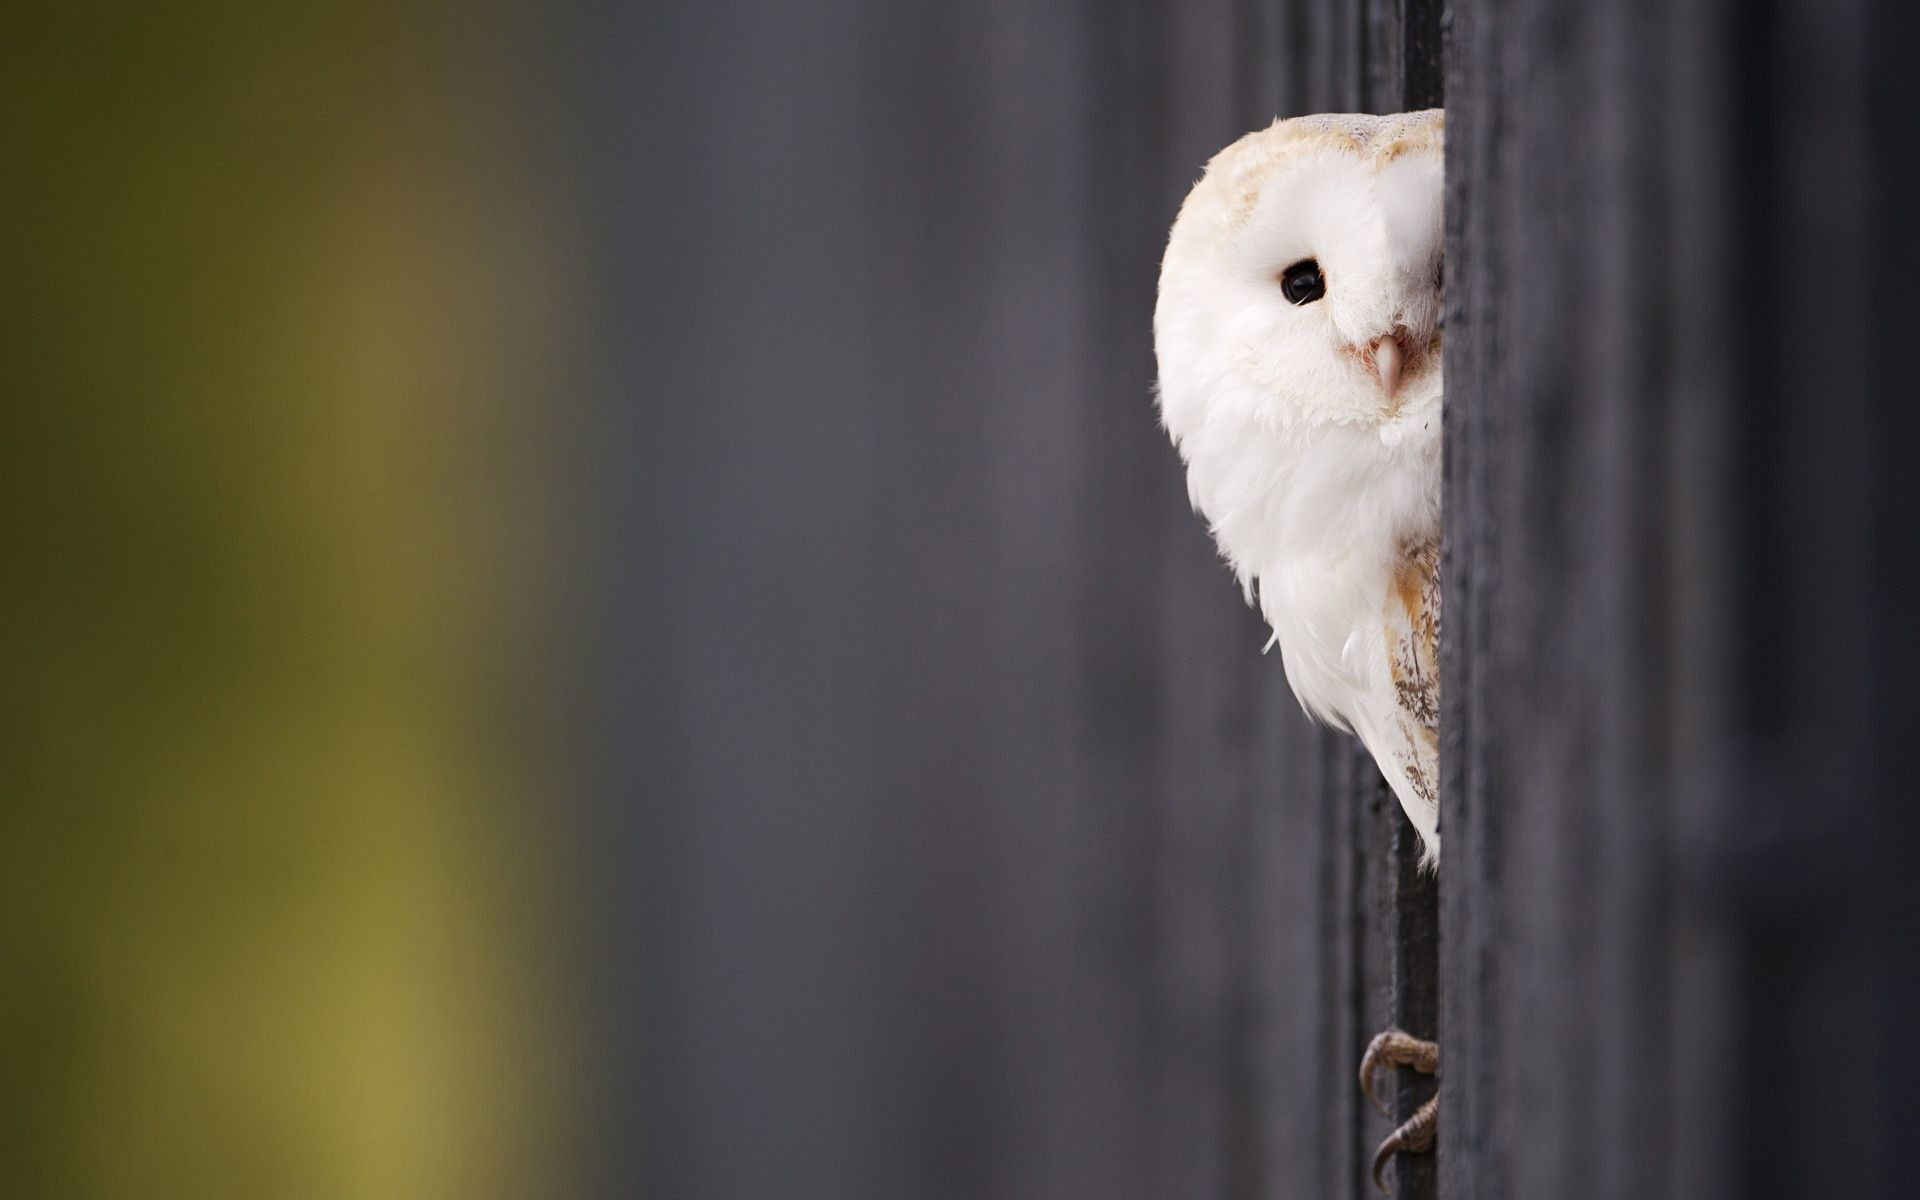 White Owl Wallpaper 1600×1000 White Owl Wallpapers (42 Wallpapers) |  Adorable Wallpapers